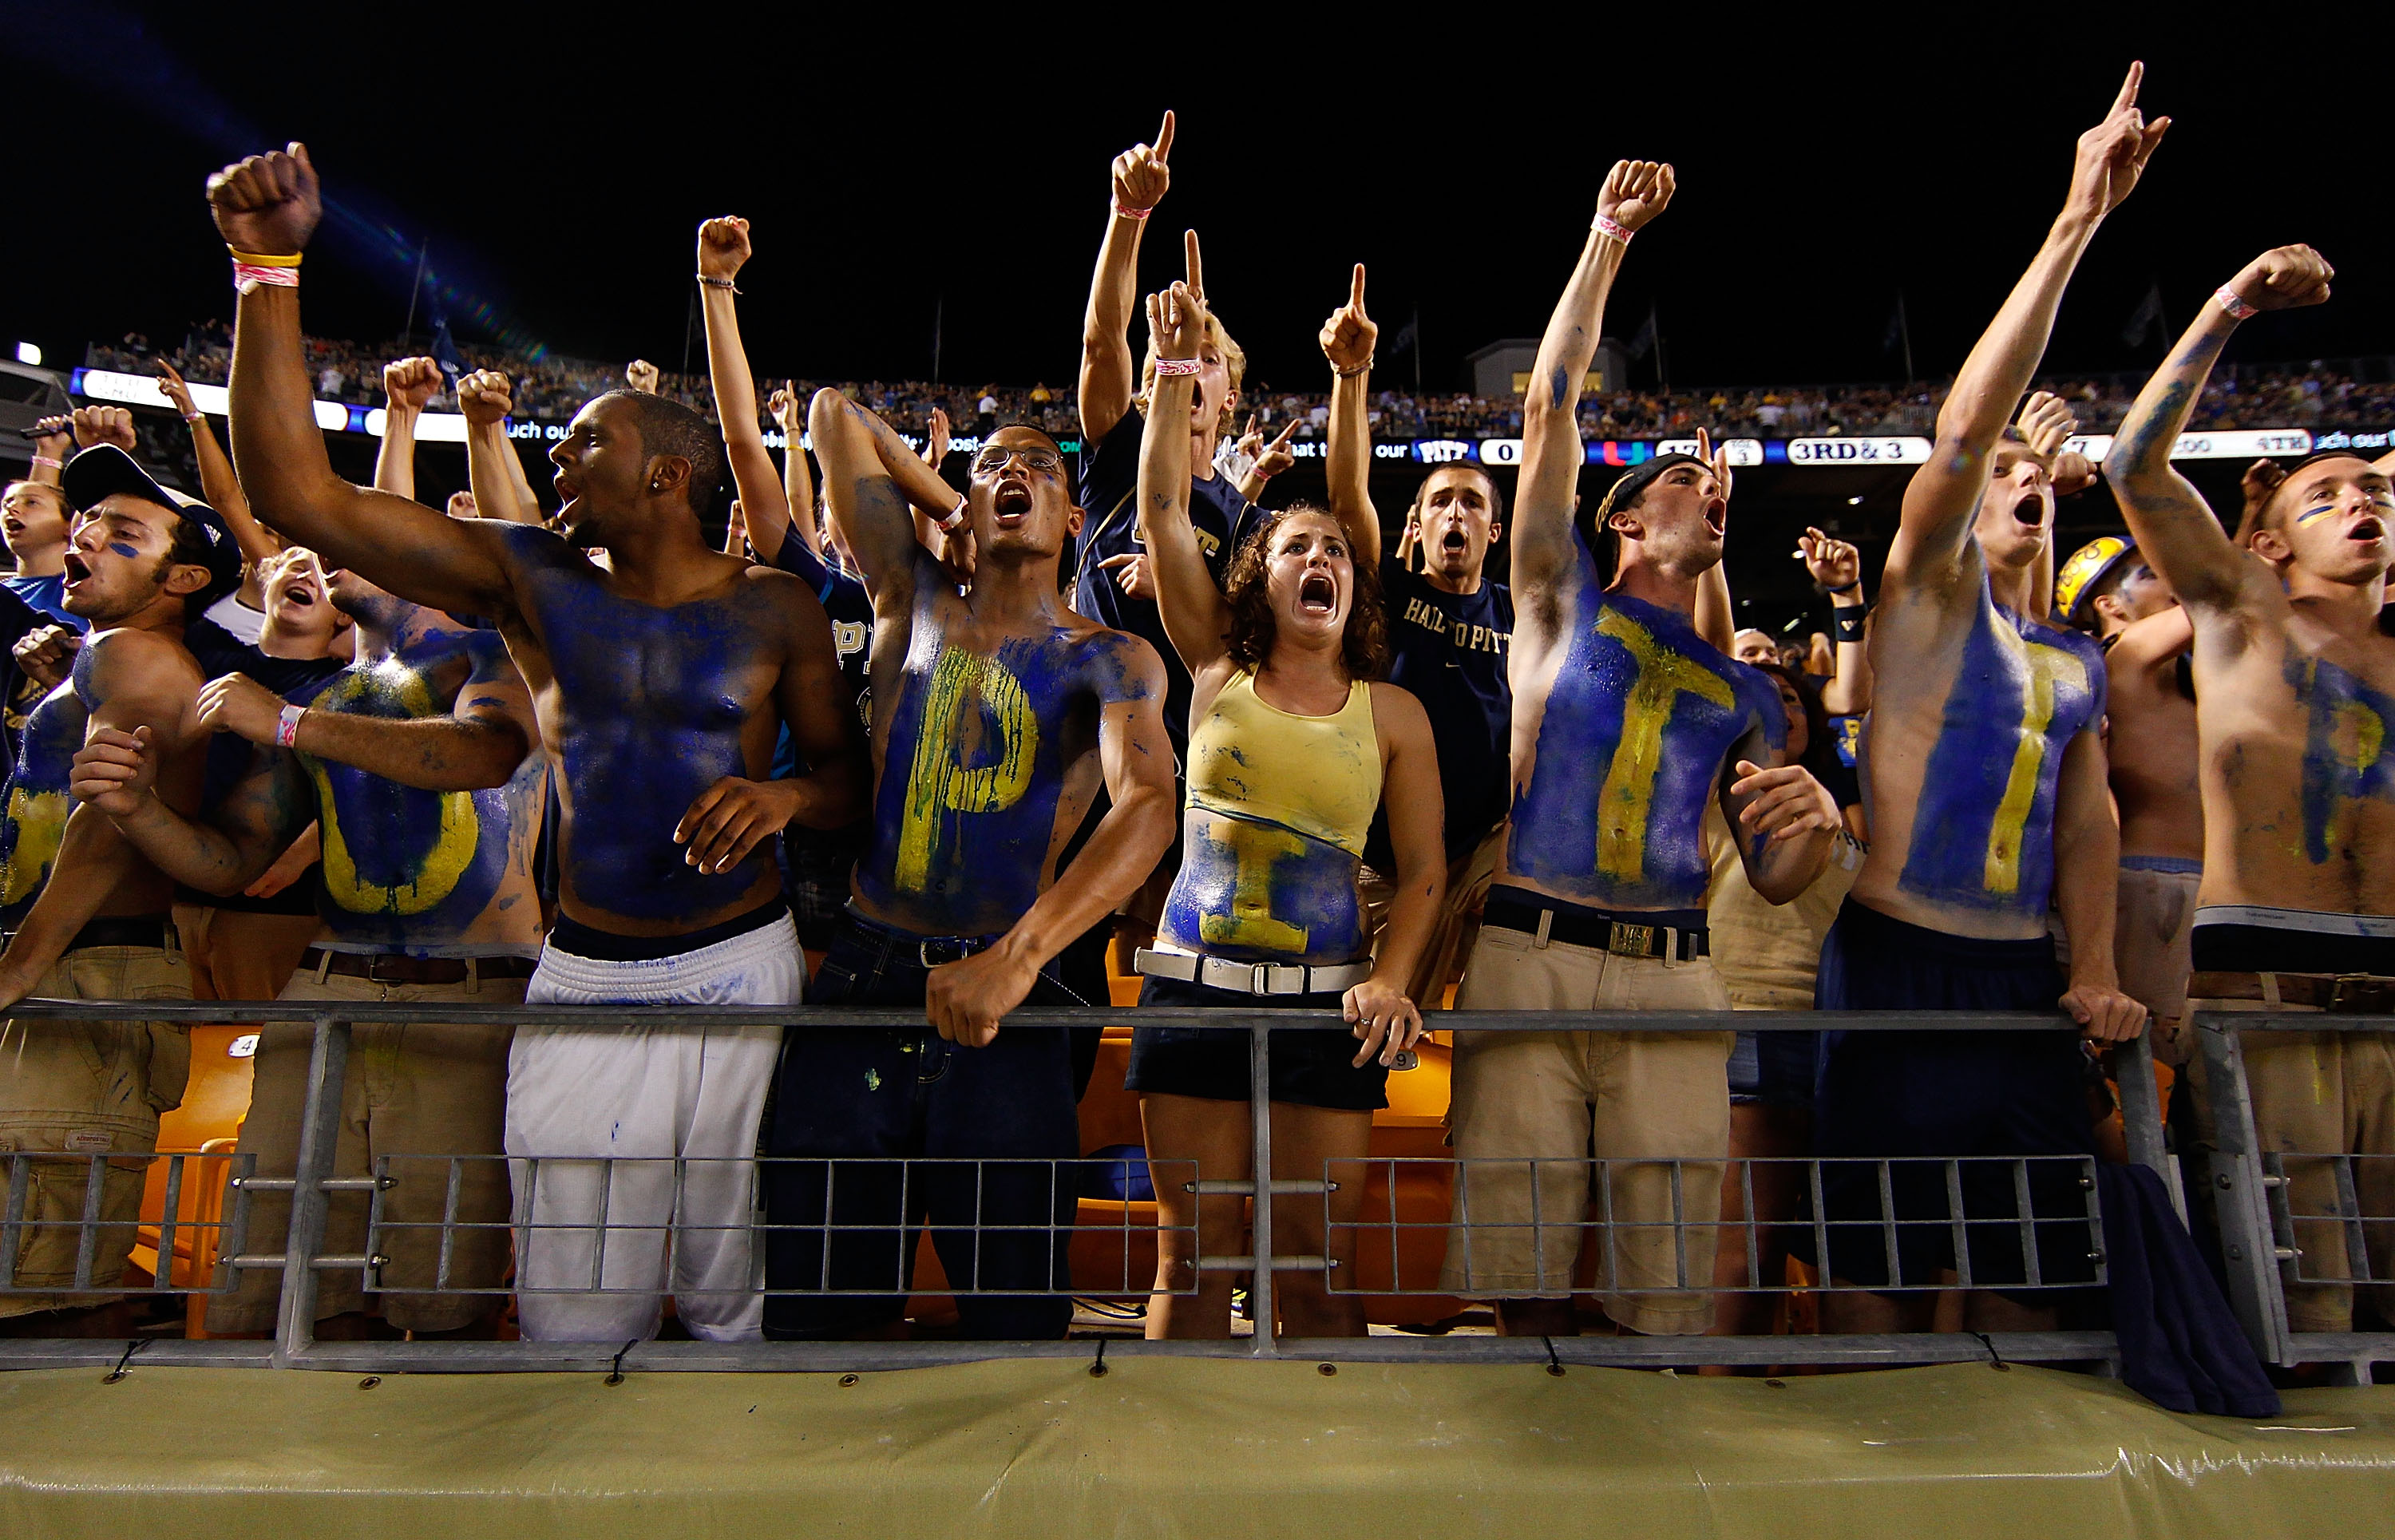 PITTSBURGH - SEPTEMBER 23:  University of Pittsburgh fans cheer during the game against the Miami Hurricanes on September 23, 2010 at Heinz Field in Pittsburgh, Pennsylvania.  (Photo by Jared Wickerham/Getty Images)